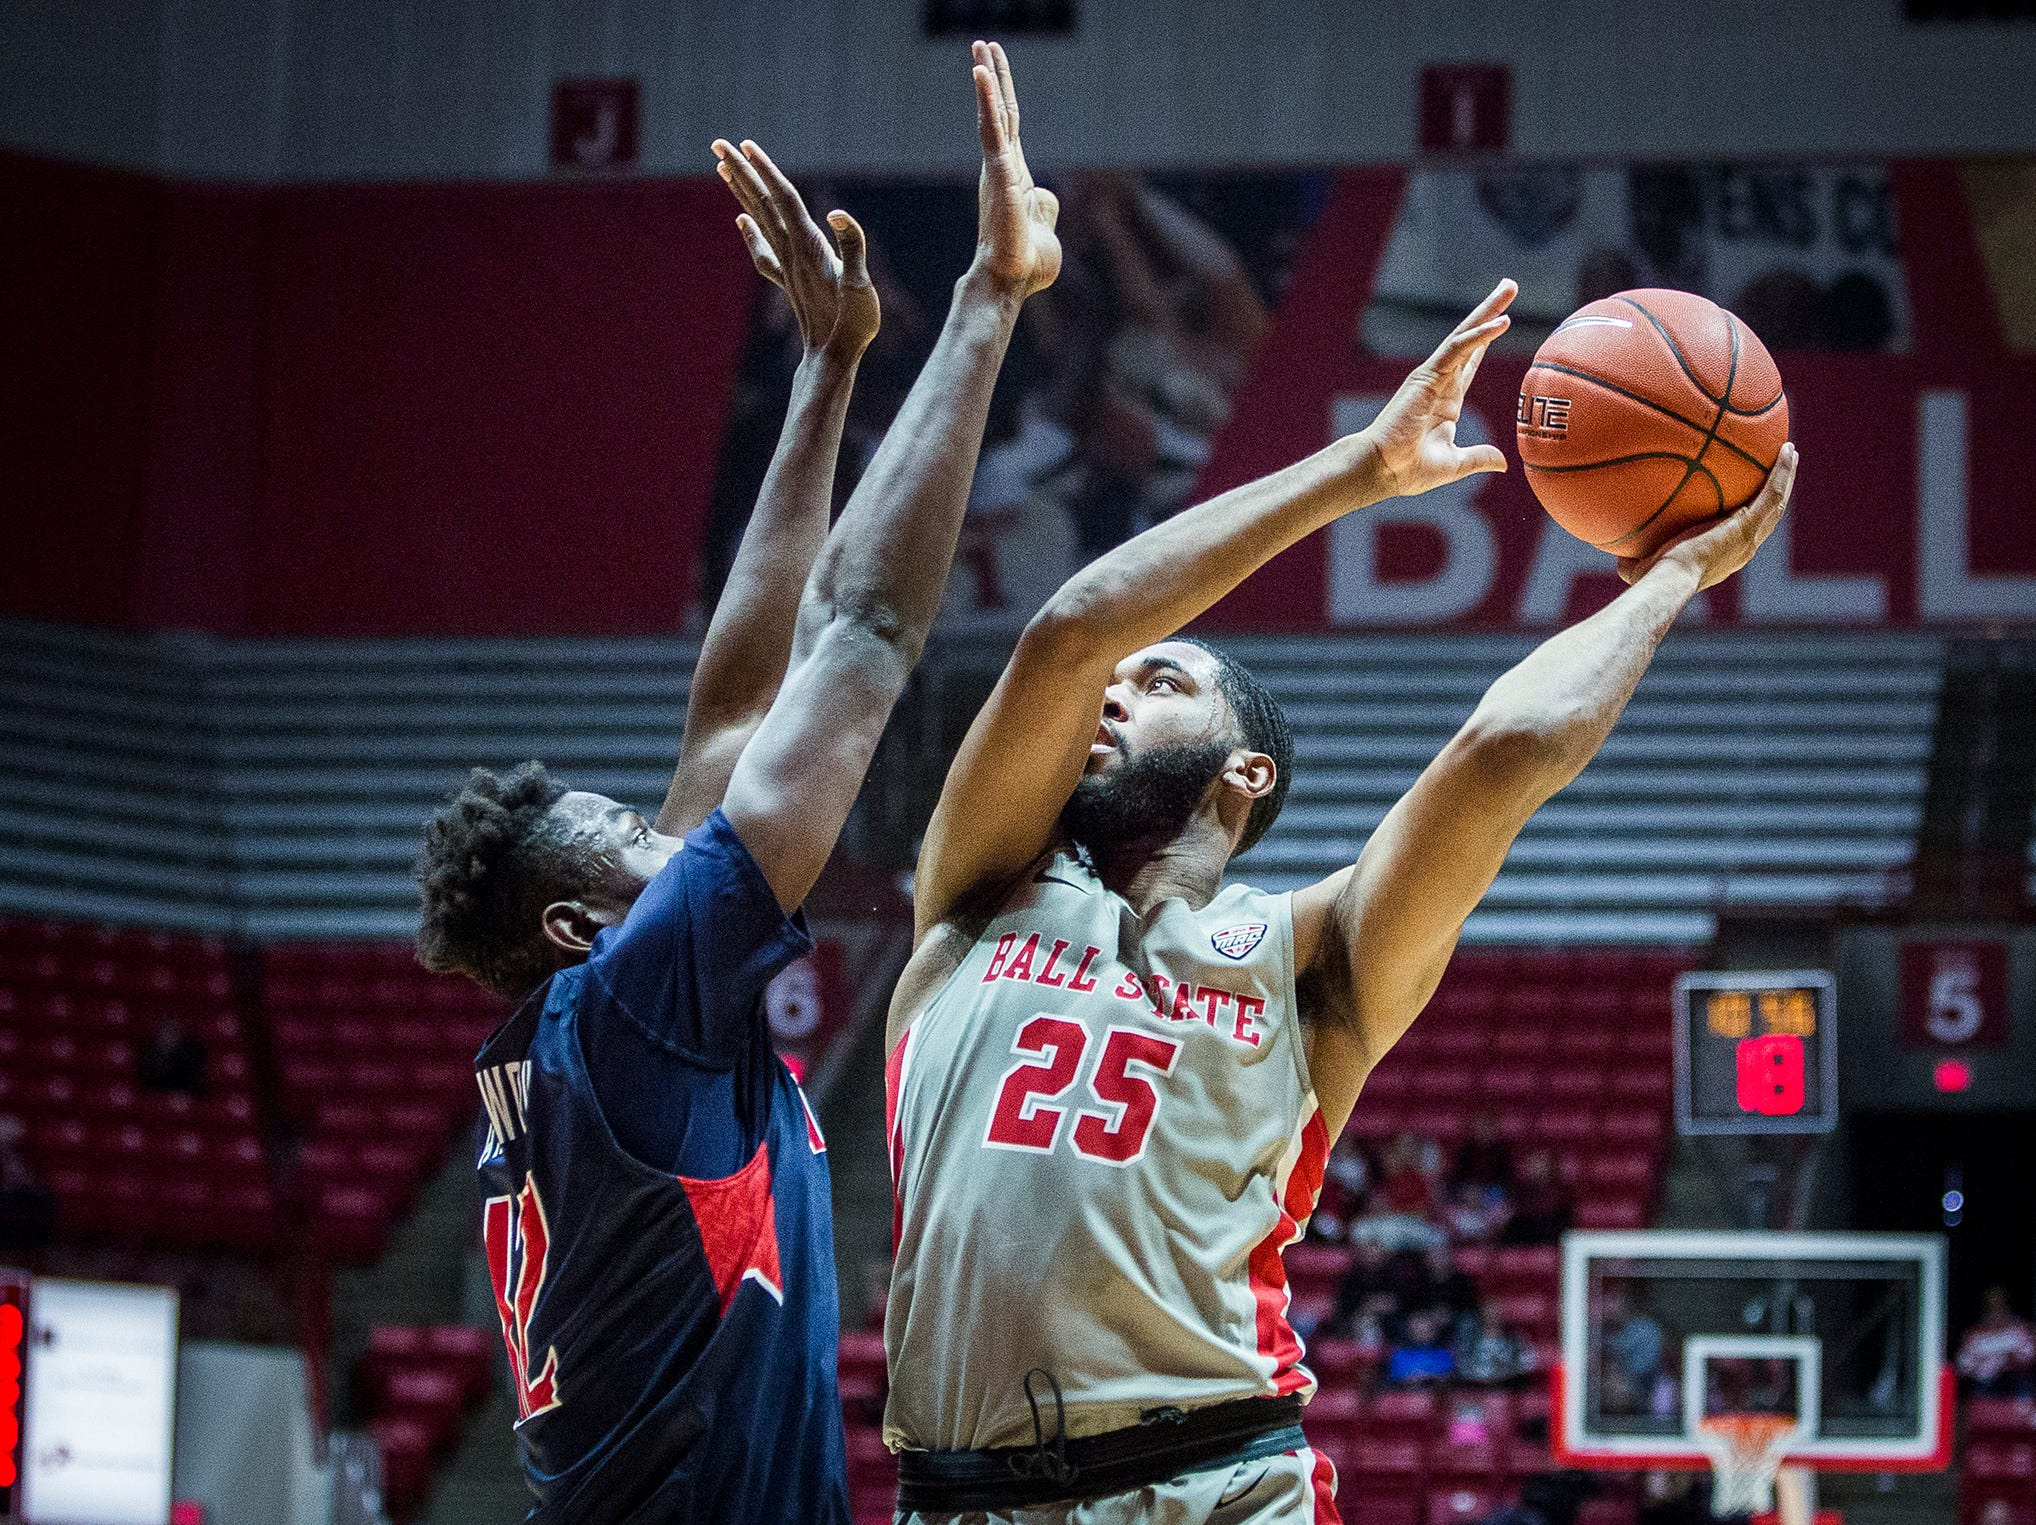 Ball State's Tahjai Teague shoots past Howard's defense during their game at Worthen Arena Thursday, Dec. 20, 2018.